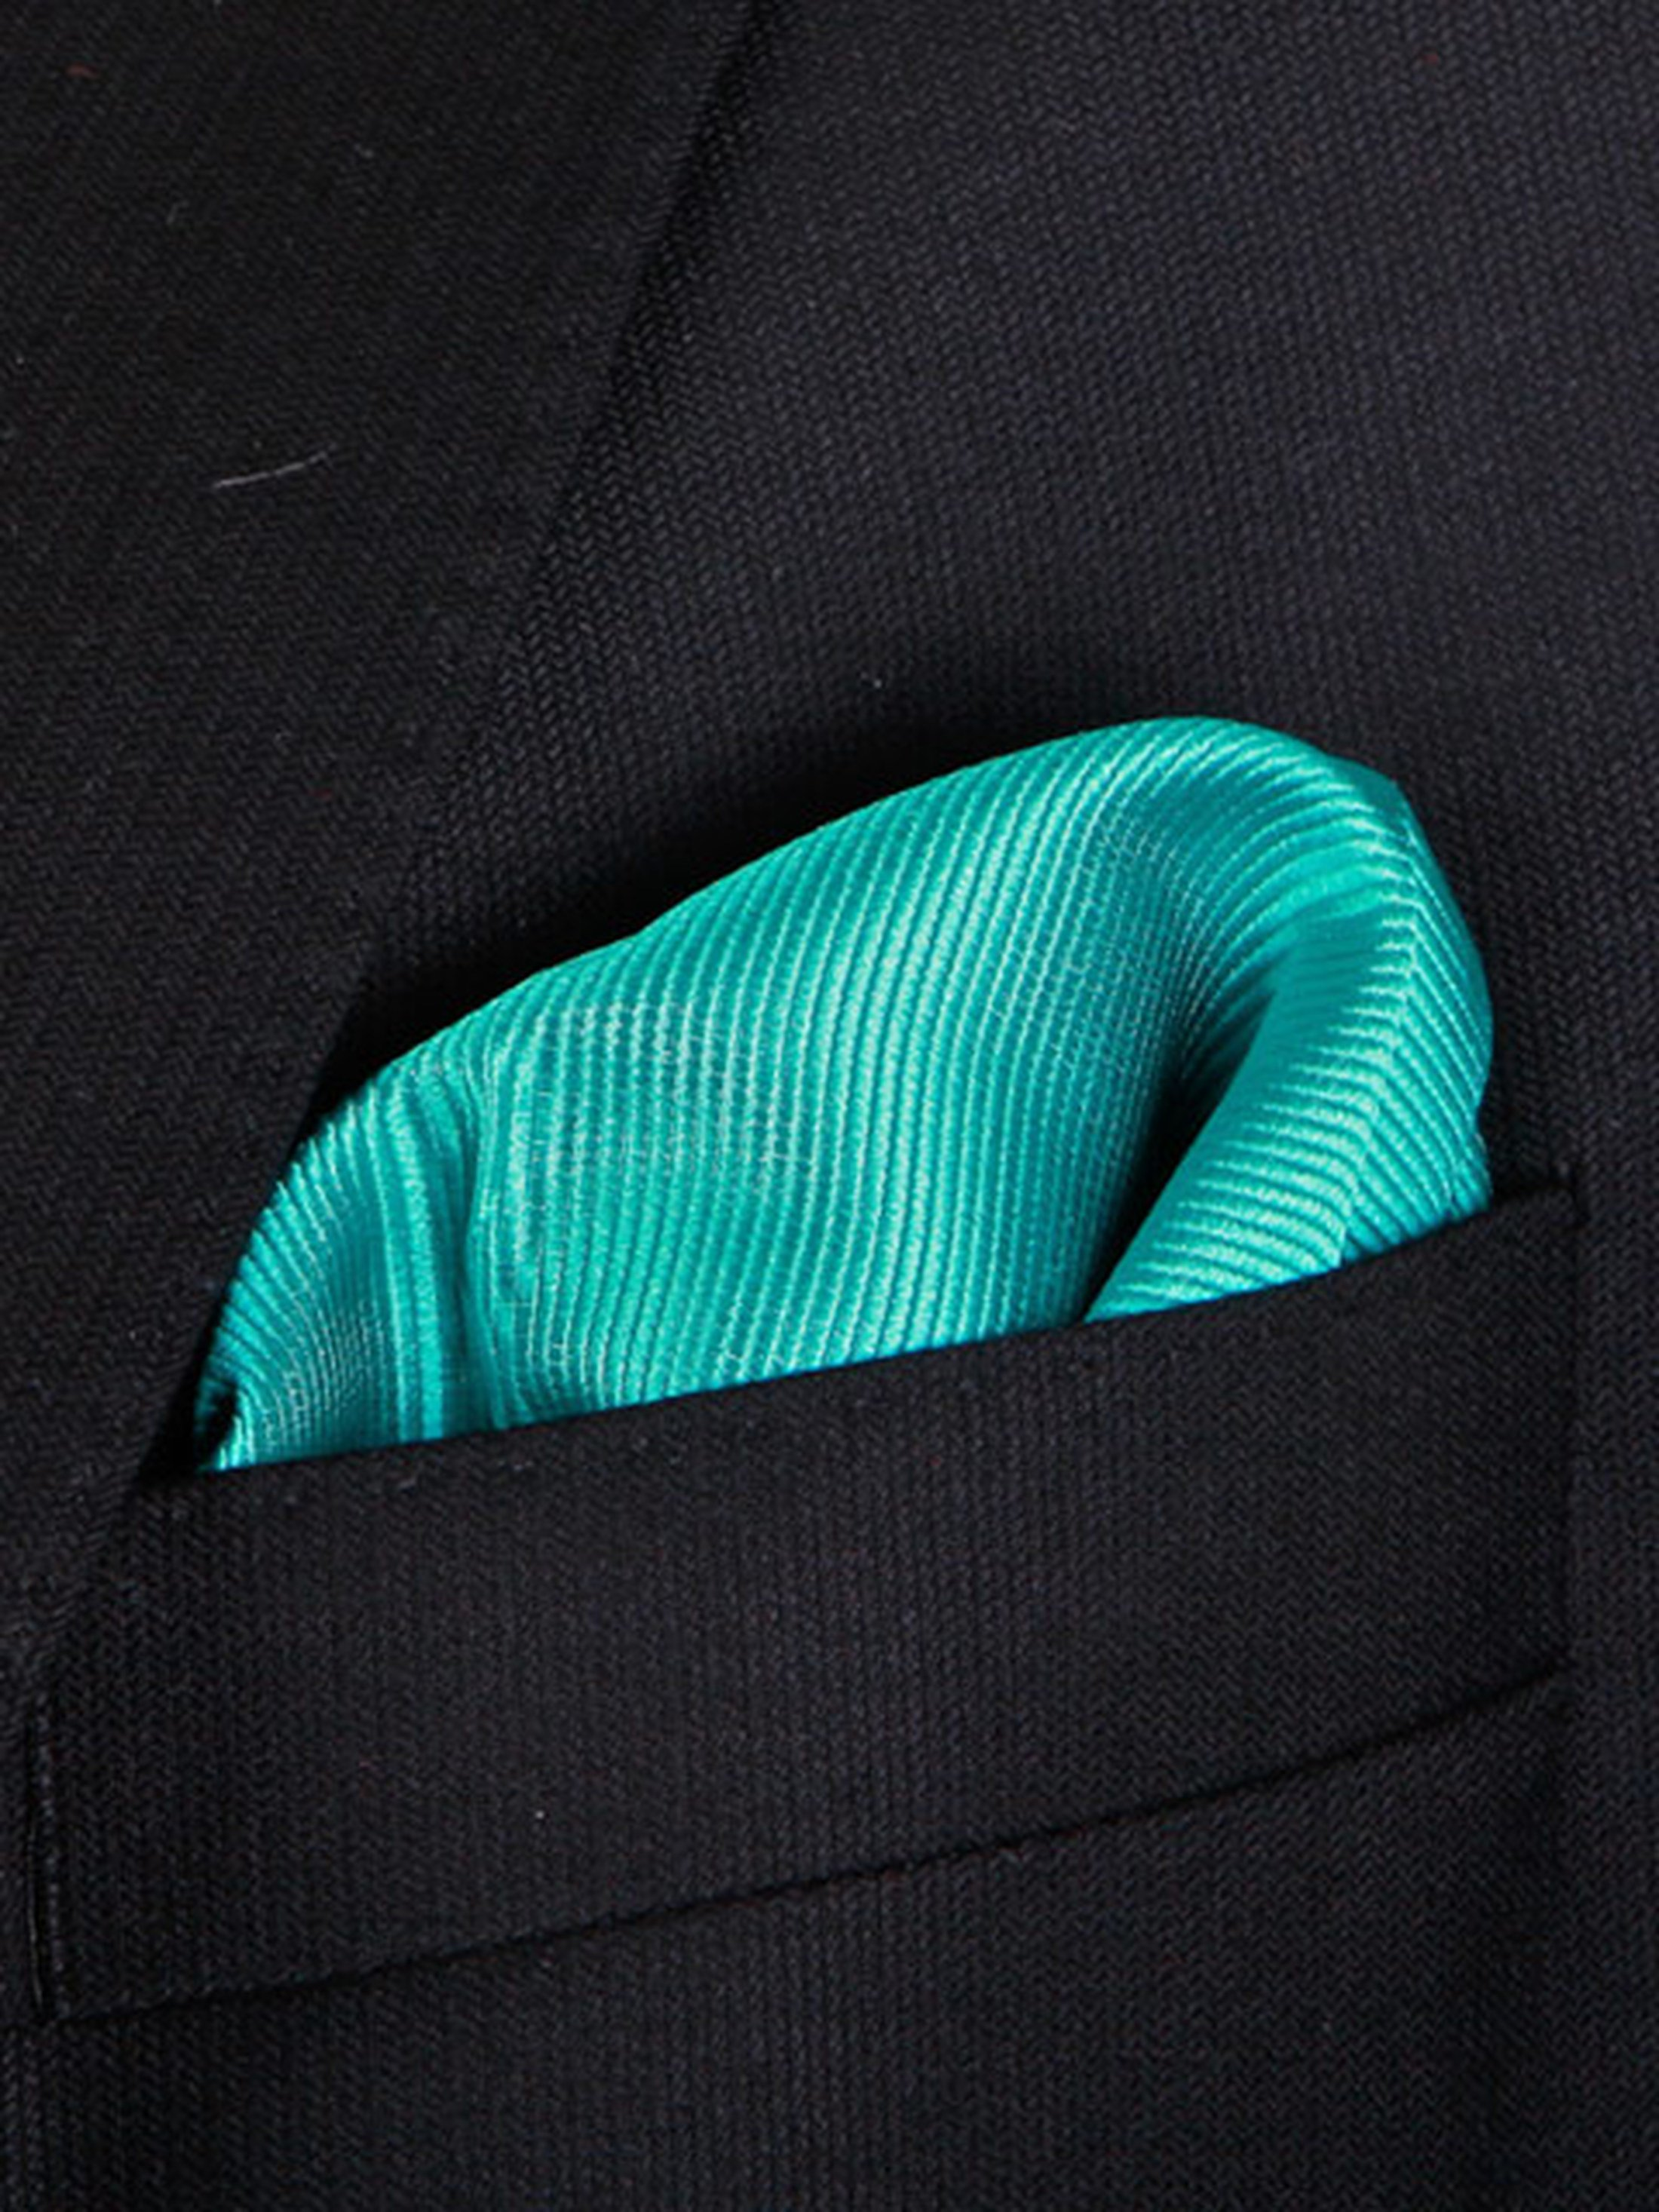 Pocket Square Smaragd F67